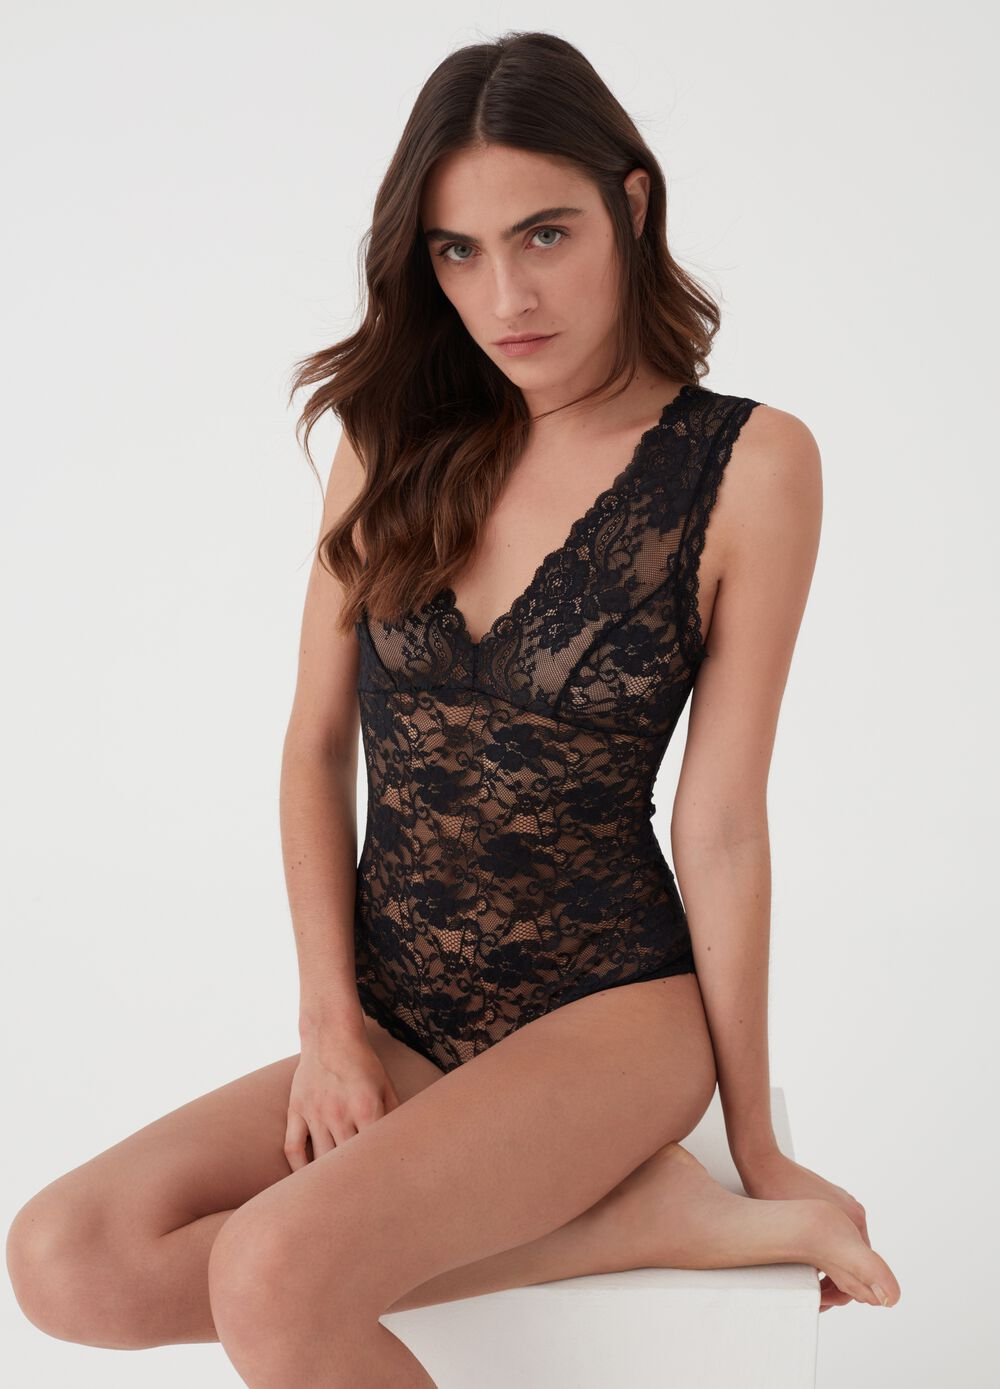 V-neck stretch lace bodysuit top